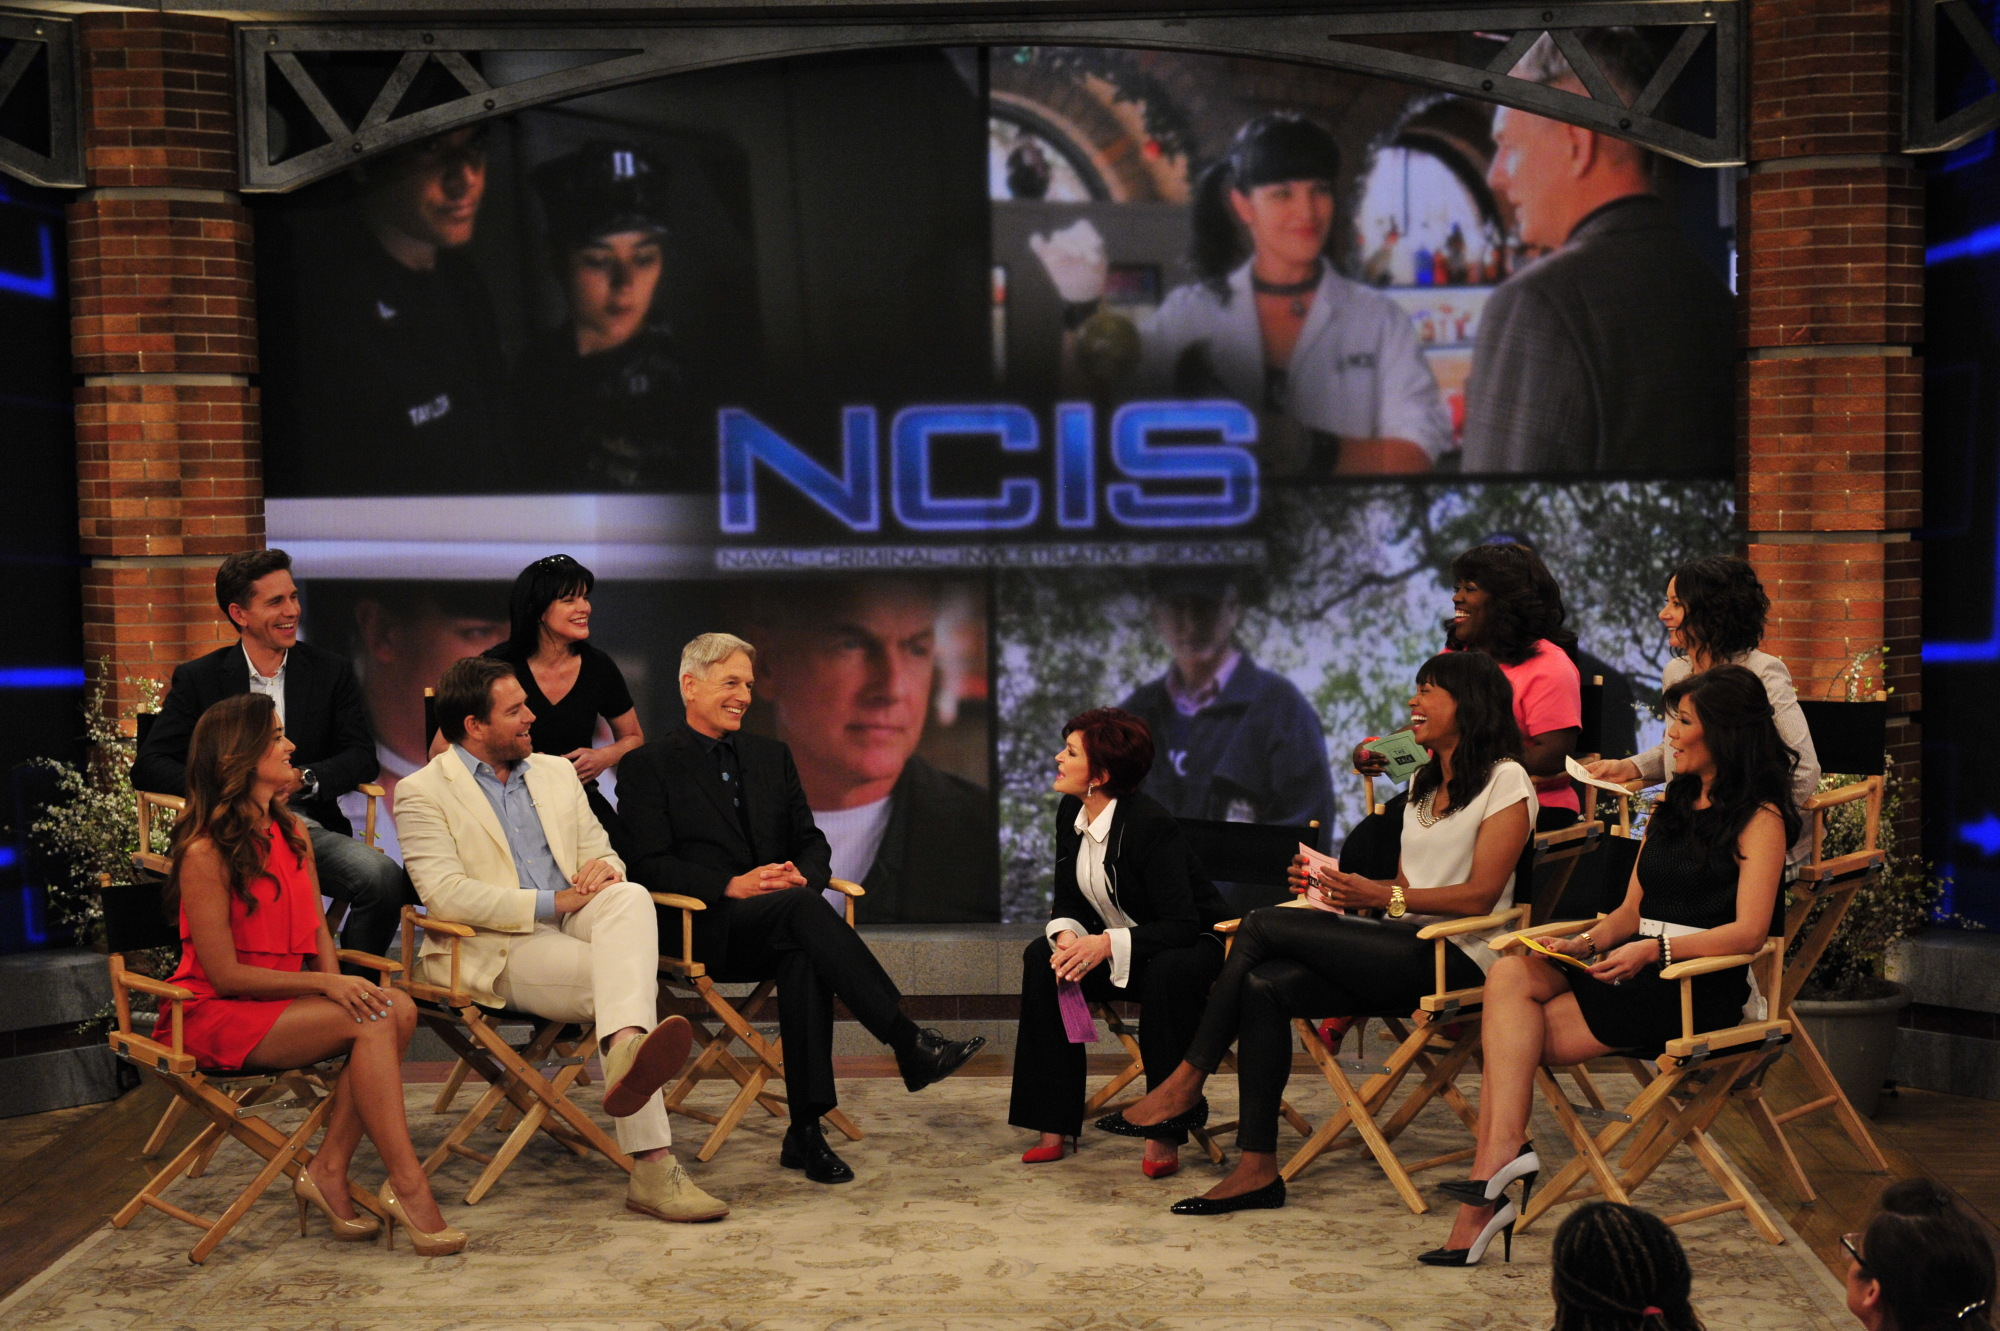 Ladies and NCIS!